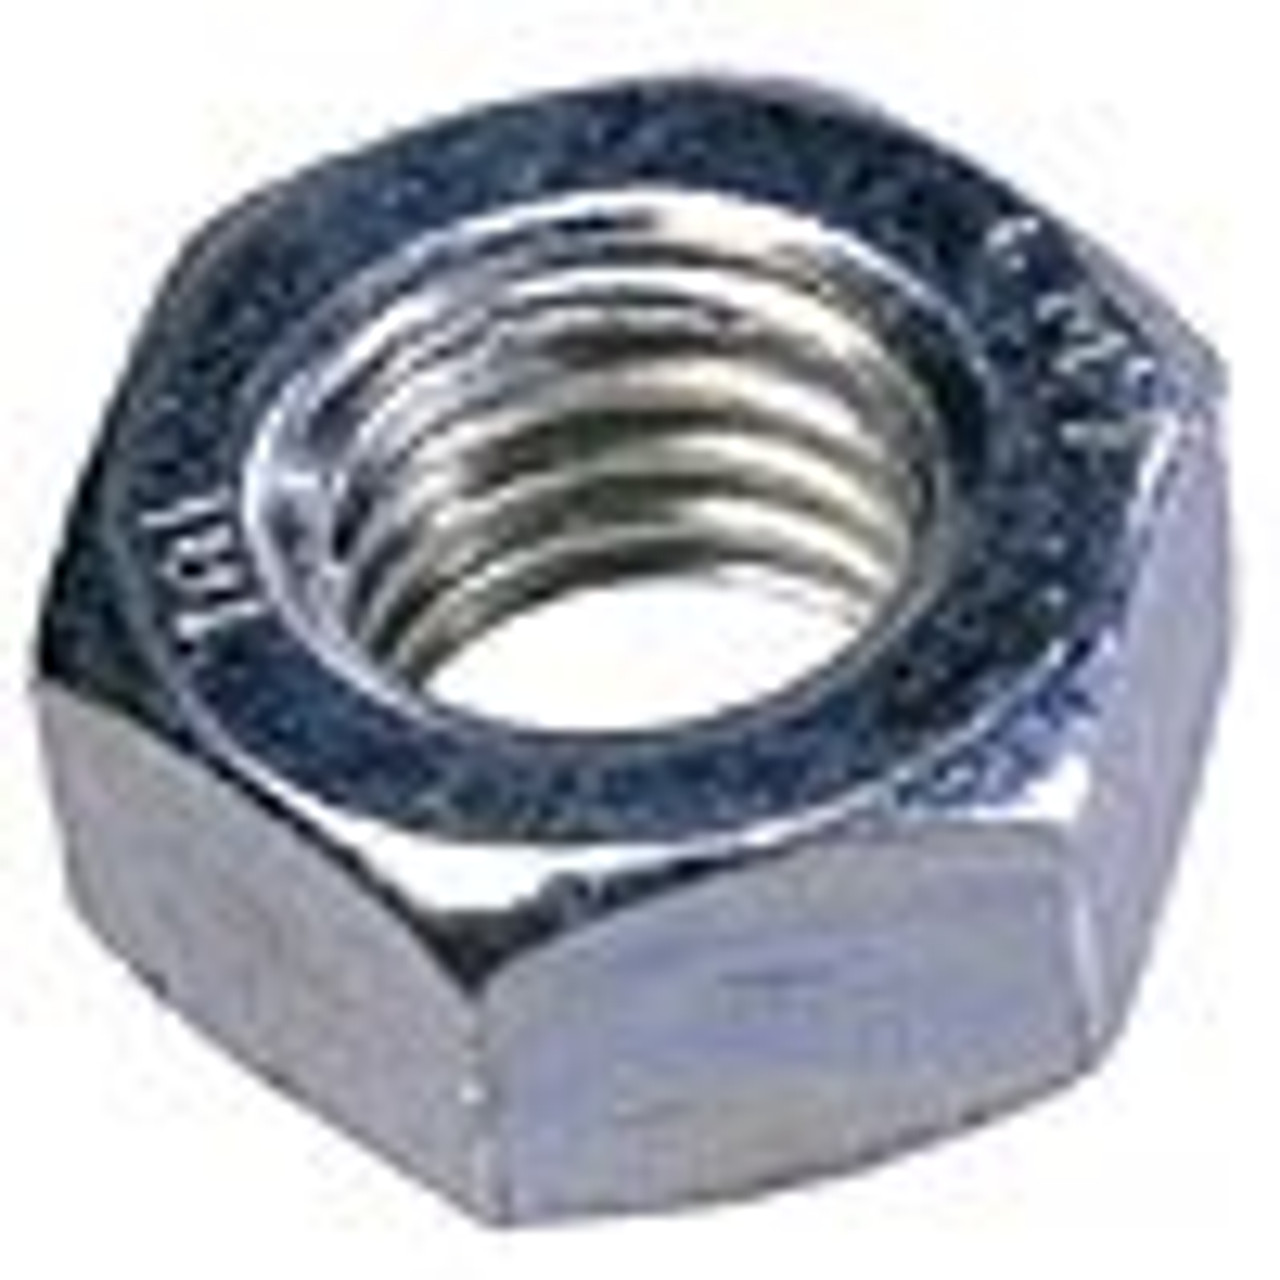 "BS Whitworth Stainless Steel Nut 5/16"" - (1610)"